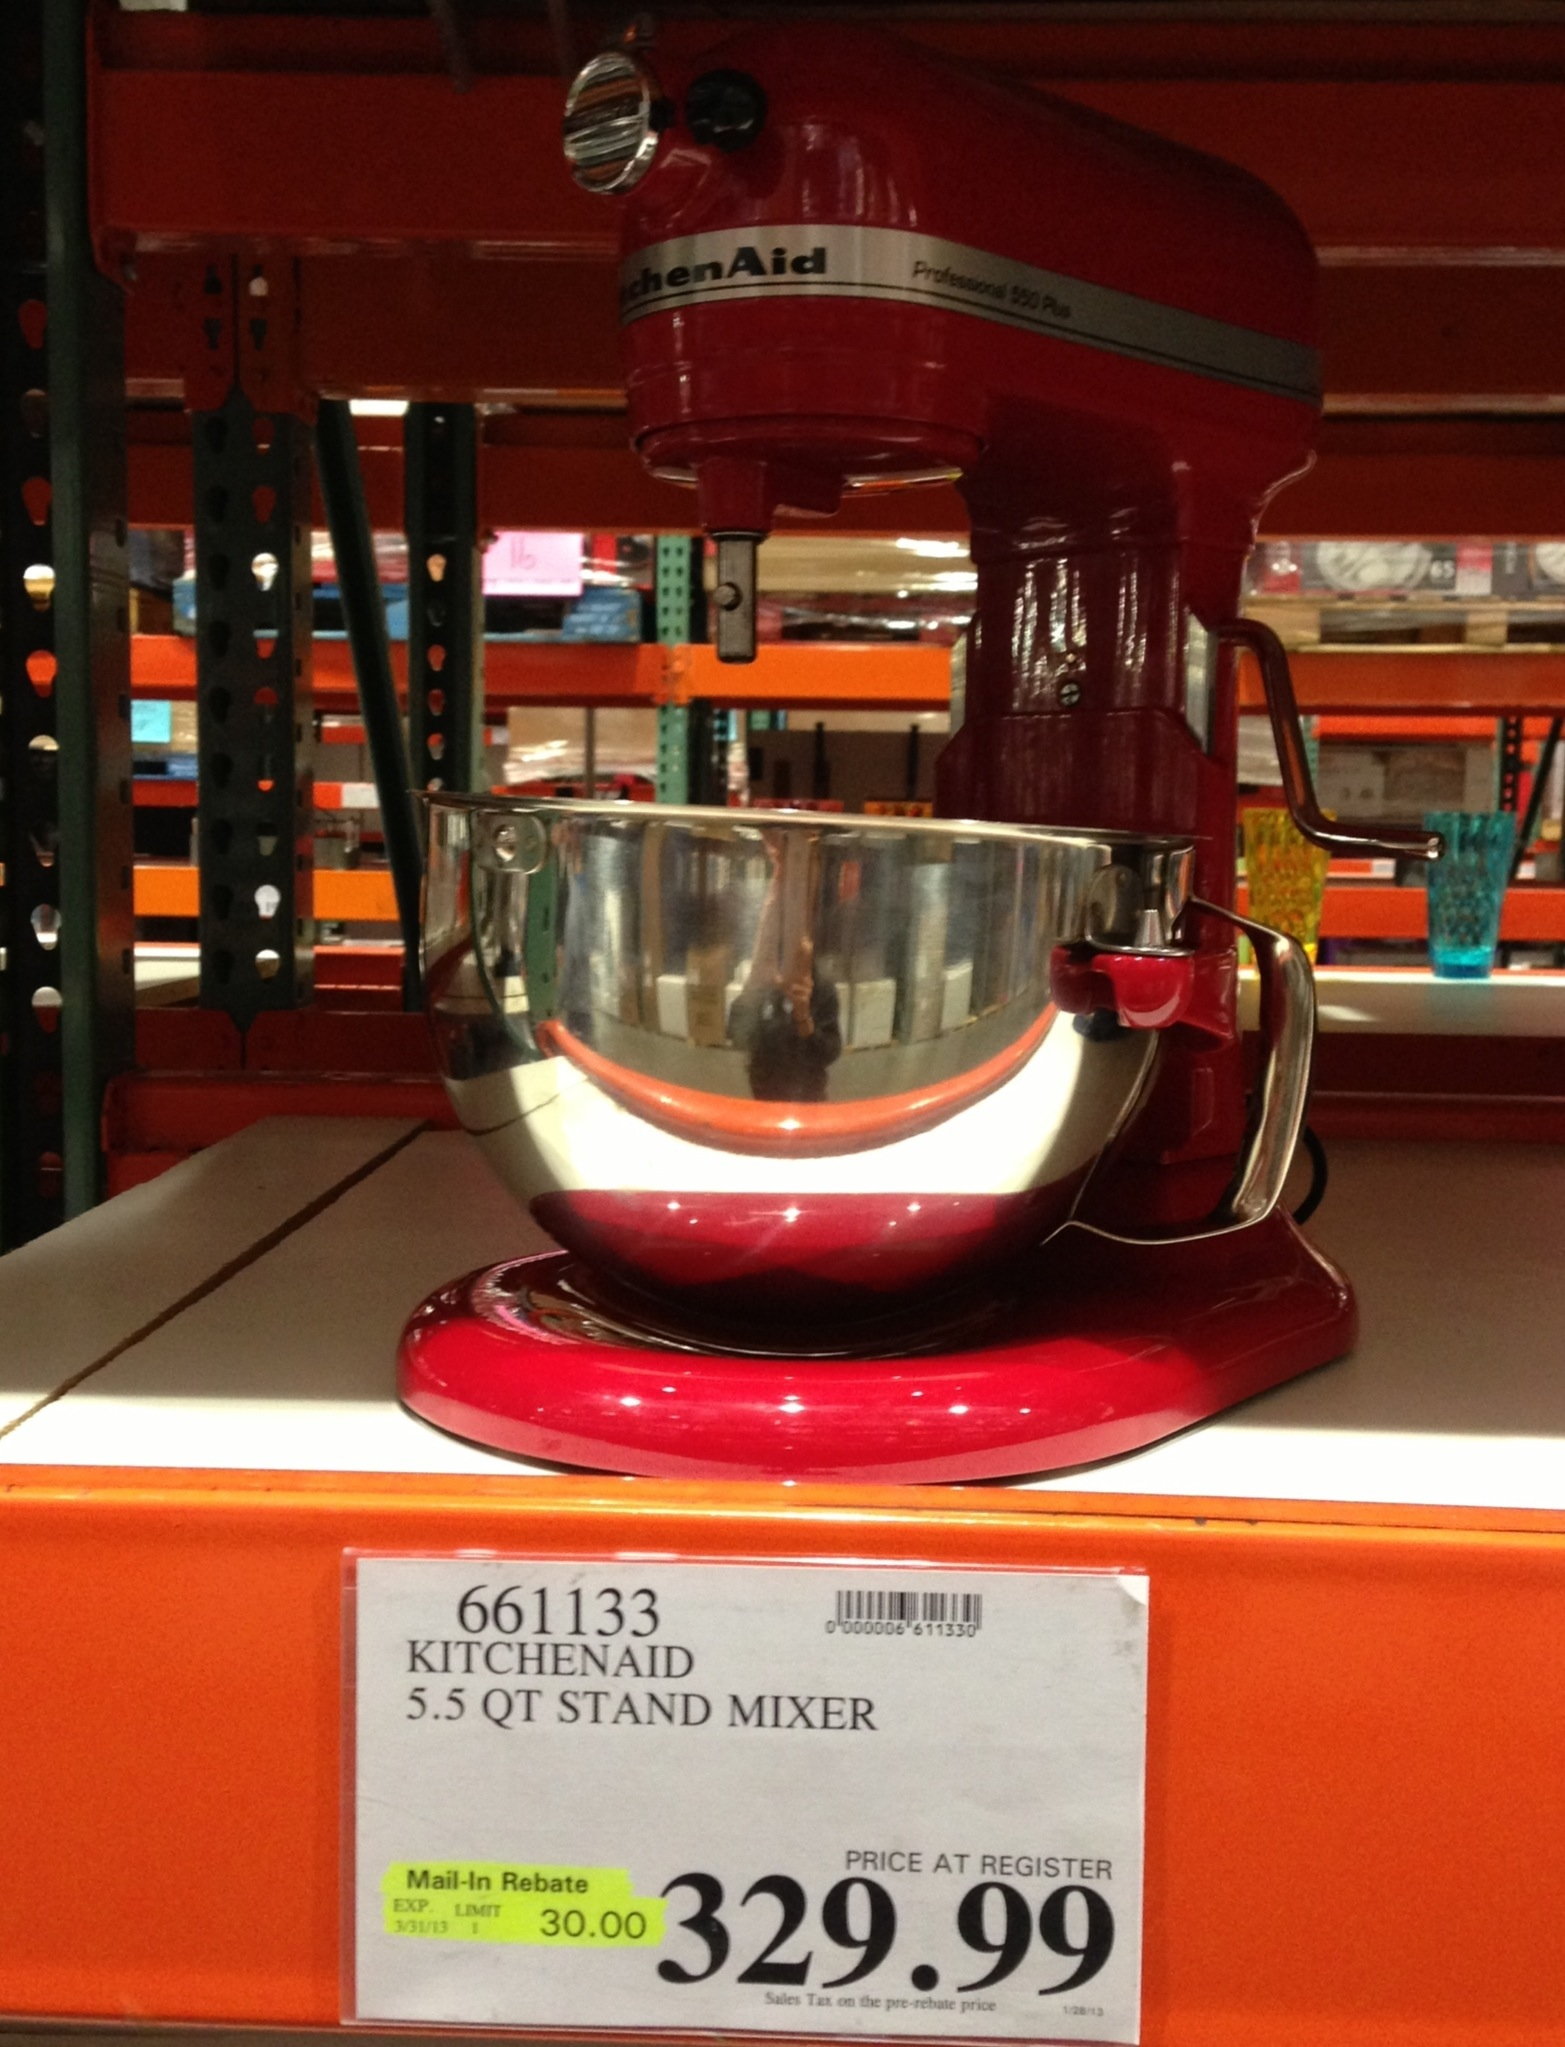 costco kitchen aid design images wedding registry taylor dustin